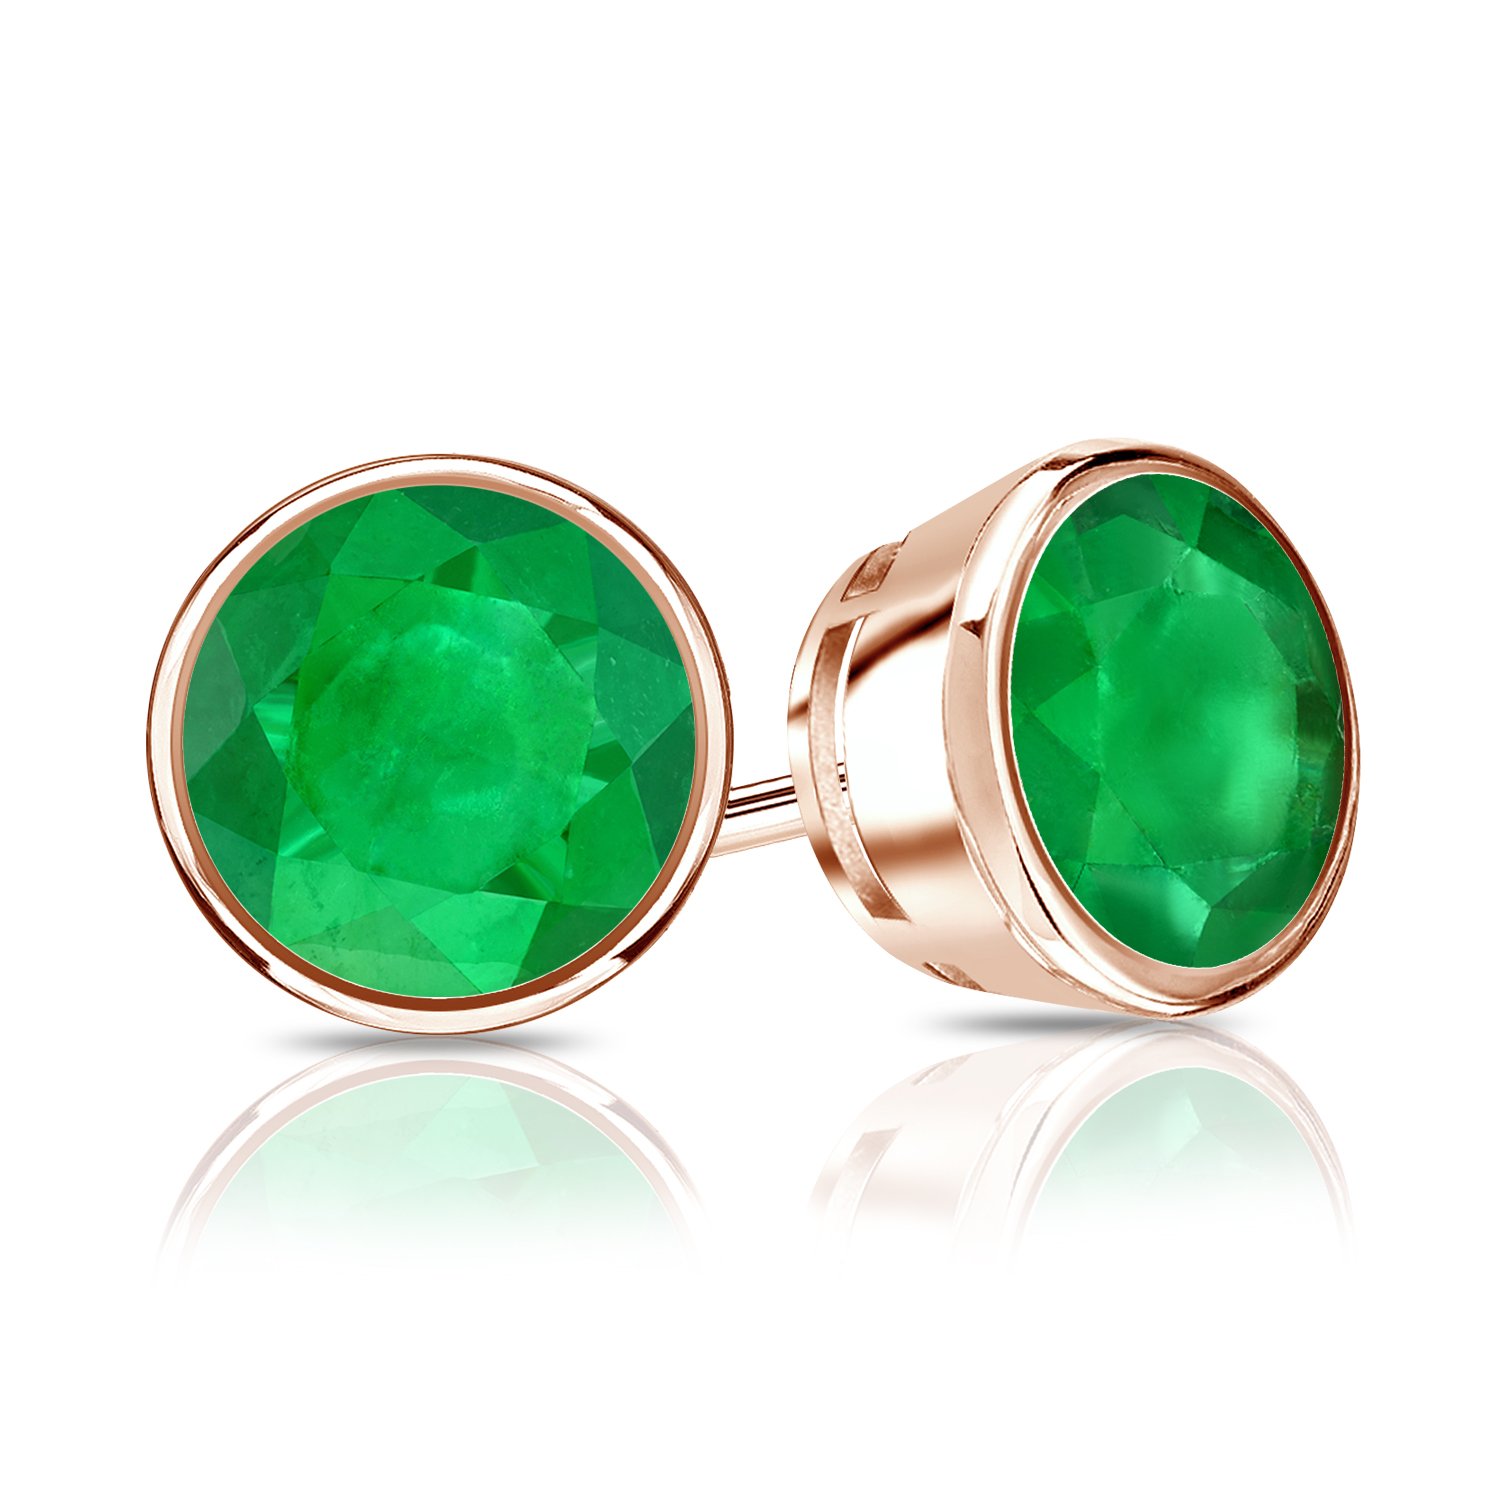 Certified 0.33 cttw Round Green Emerald Gemstone Stud Earrings in 14k Rose Gold Bezel (Green, AAA)